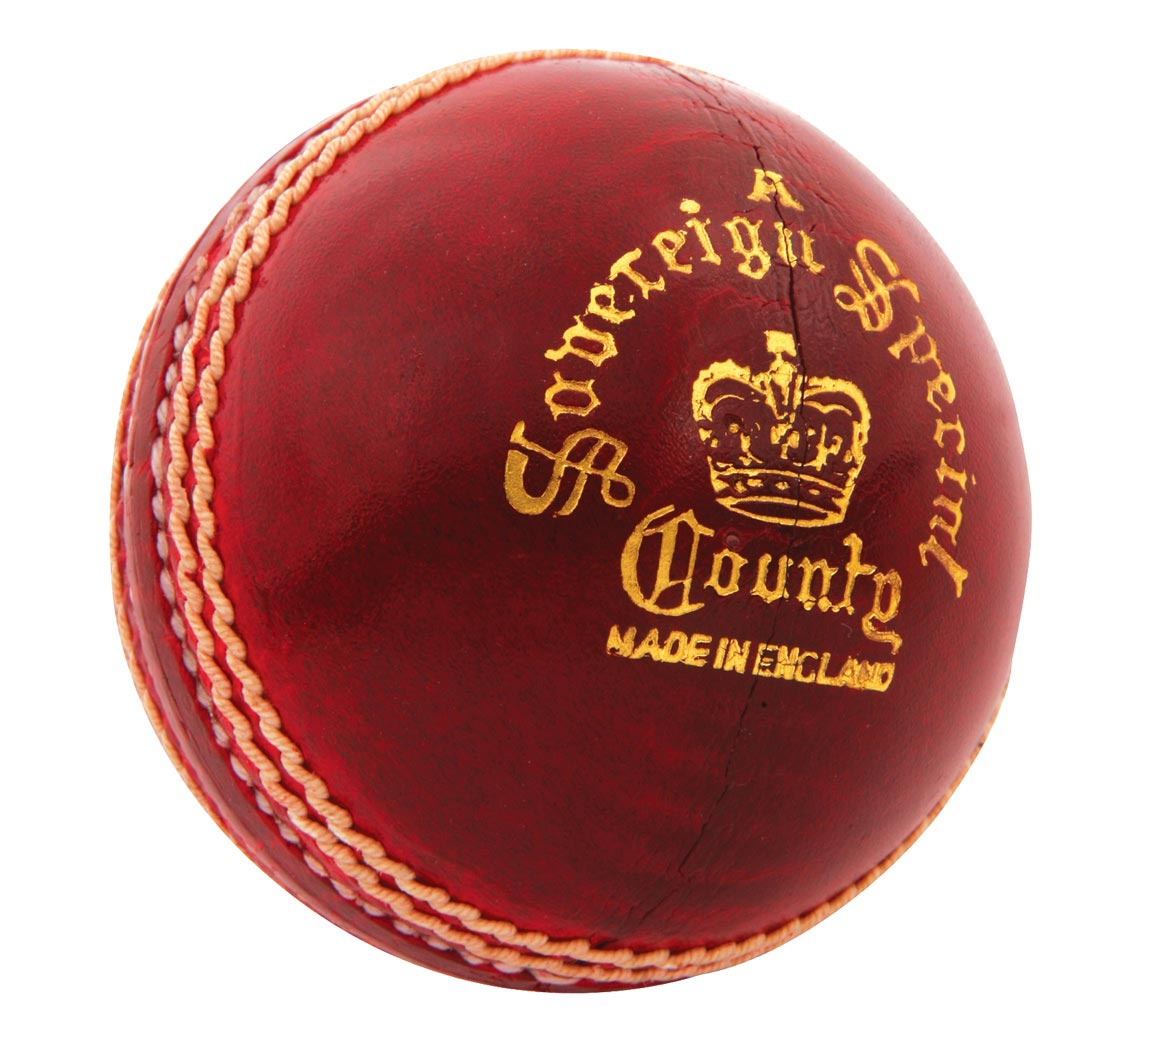 New Incrediball Match Training Practice Stitched Seam Coaching Cricket Ball by Easton